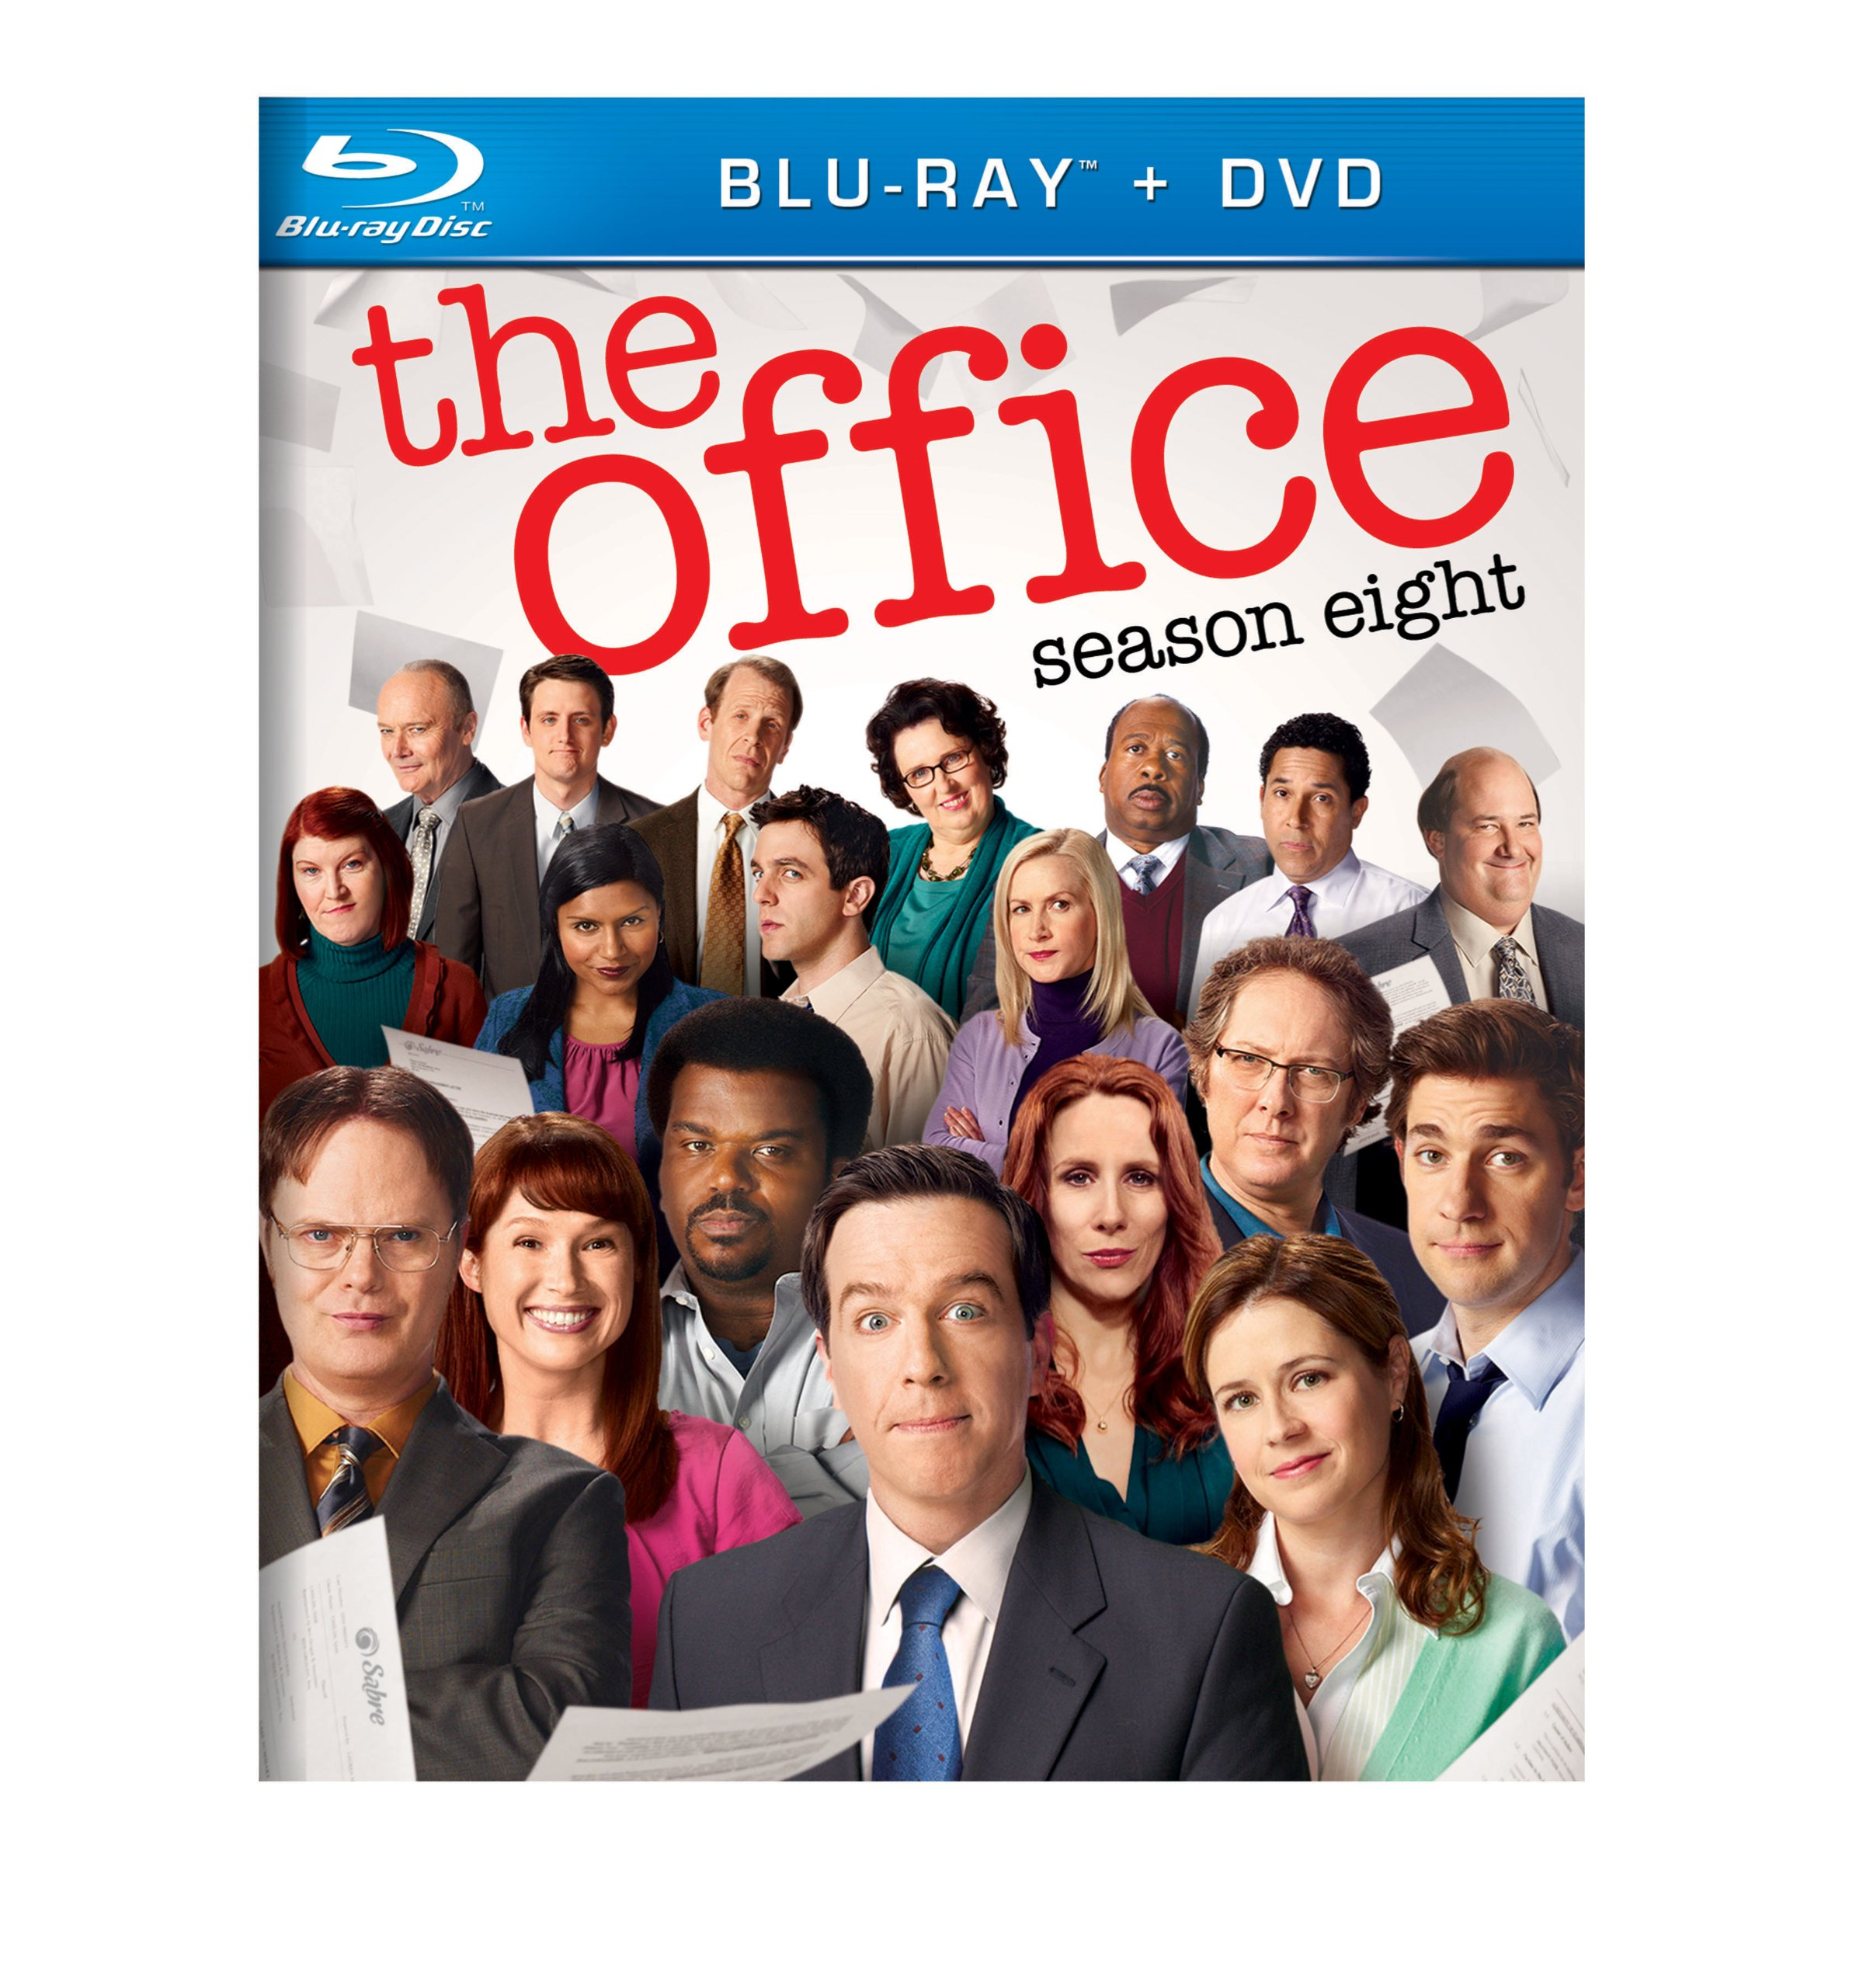 Blu-ray : The Office: Season Eight (With DVD, Ultraviolet Digital Copy, Widescreen, Dolby, Digital Theater System)